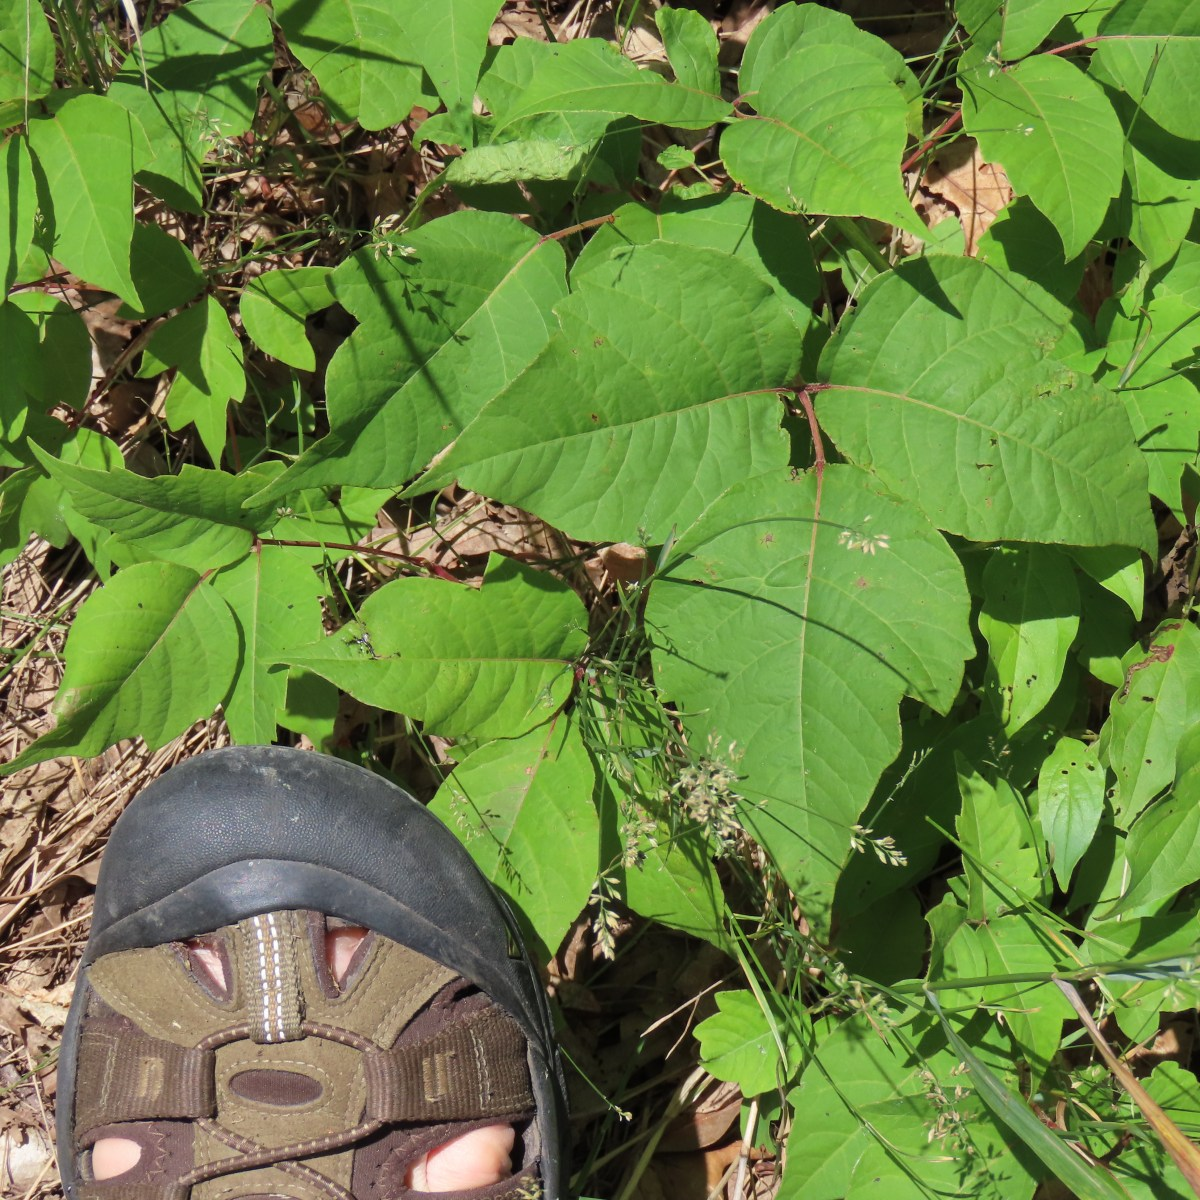 Green poison ivy growing on the ground